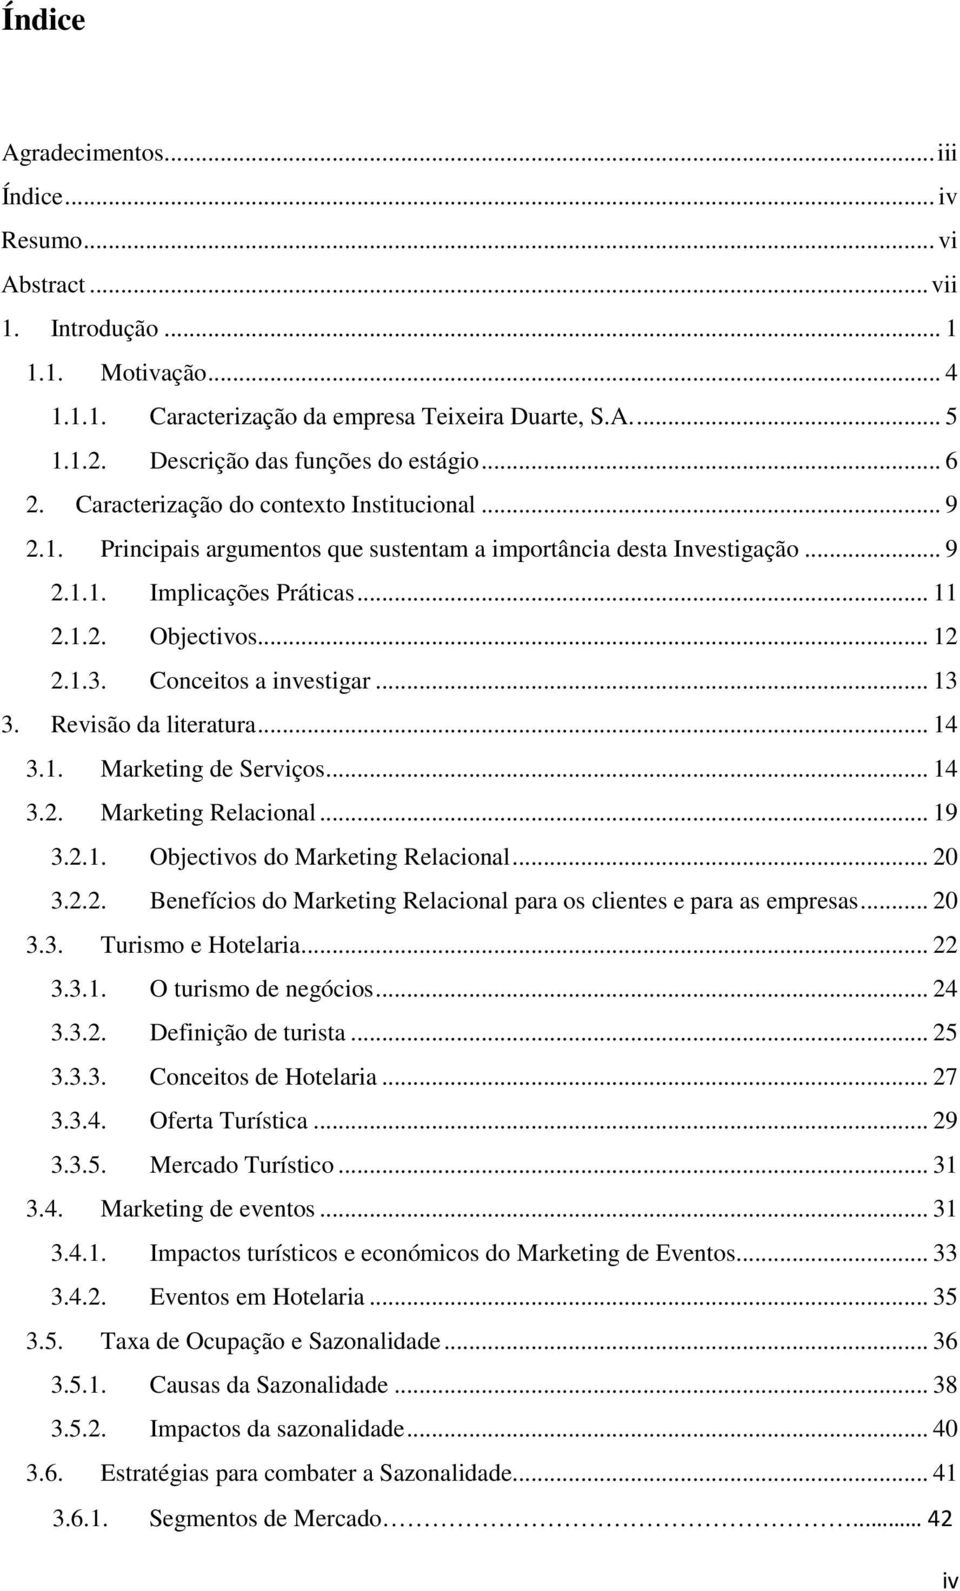 1.2. Objectivos... 12 2.1.3. Conceitos a investigar... 13 3. Revisão da literatura... 14 3.1. Marketing de Serviços... 14 3.2. Marketing Relacional... 19 3.2.1. Objectivos do Marketing Relacional.